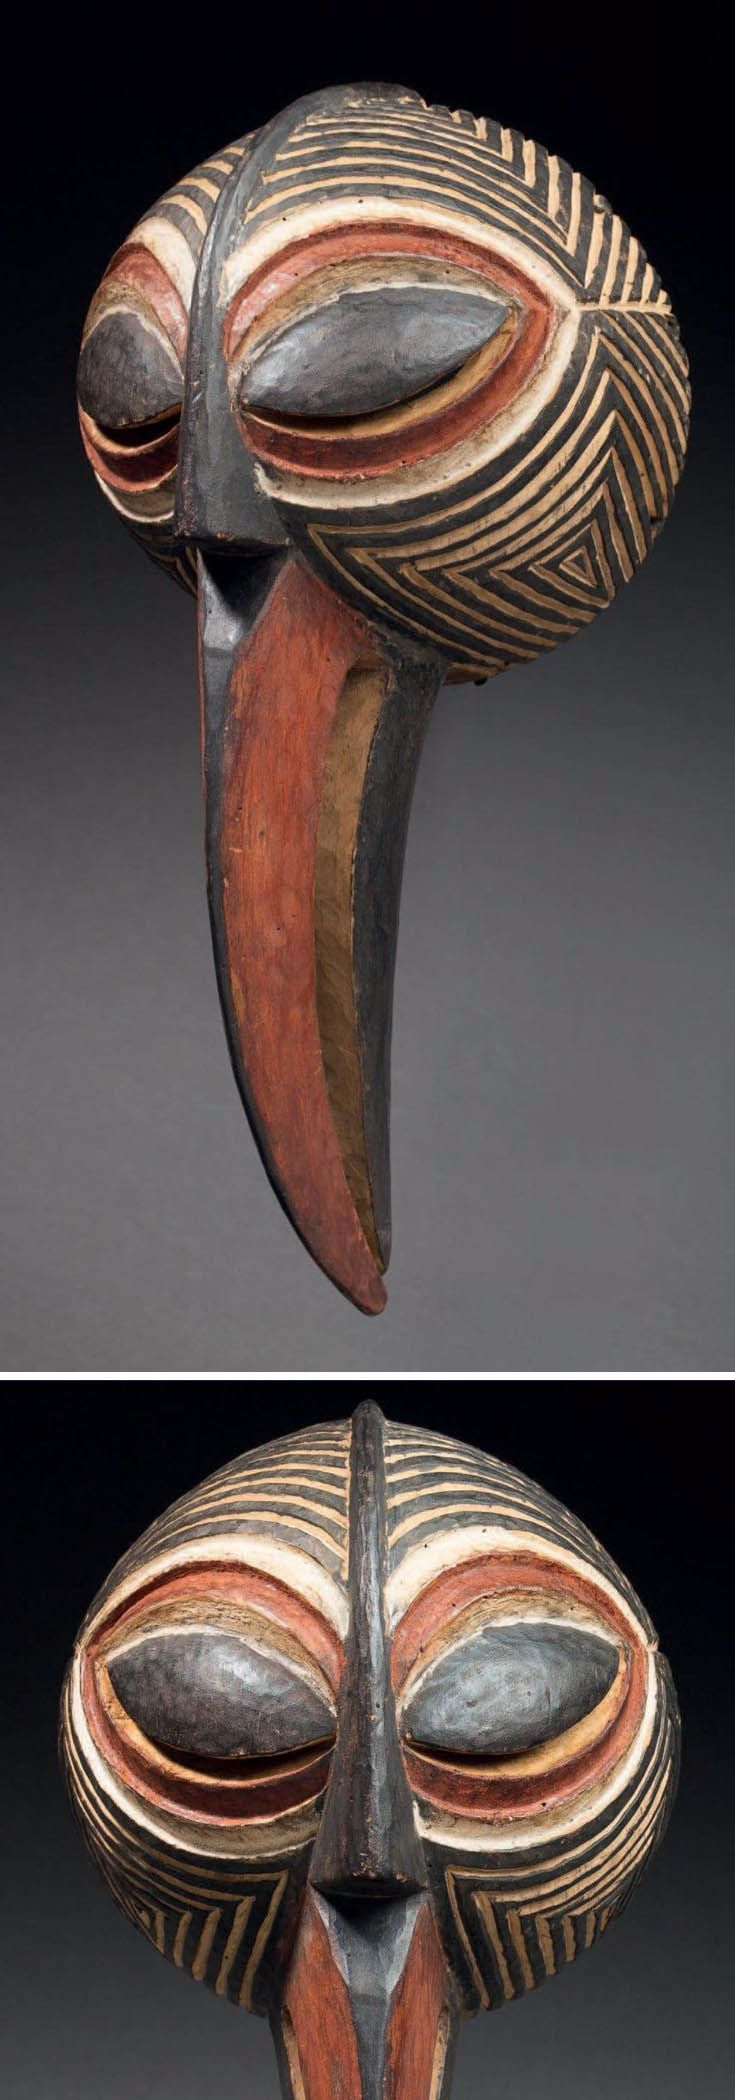 Africa | Mask from the Luba Songye people of DR Congo | Wood and pigment